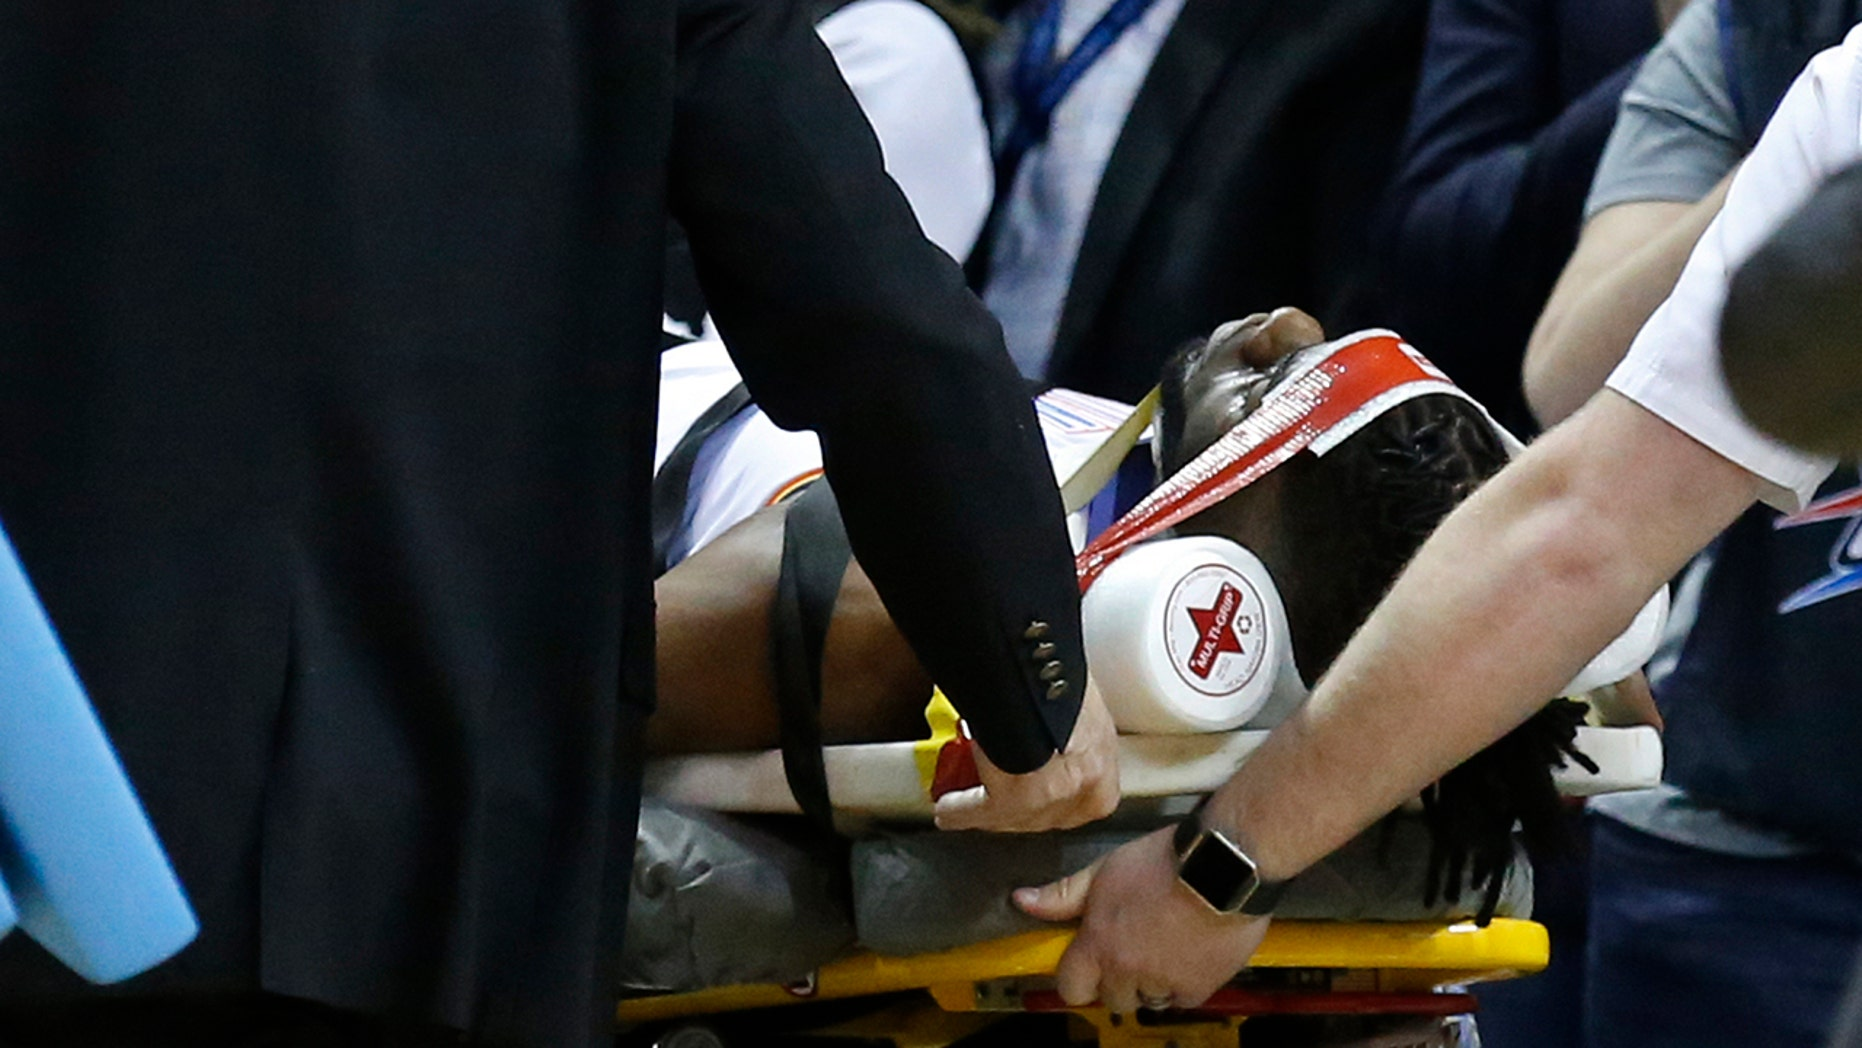 Oklahoma City Thunder Forward Nerlens Noel Is Wheeled Off The Court On A Stretcher In